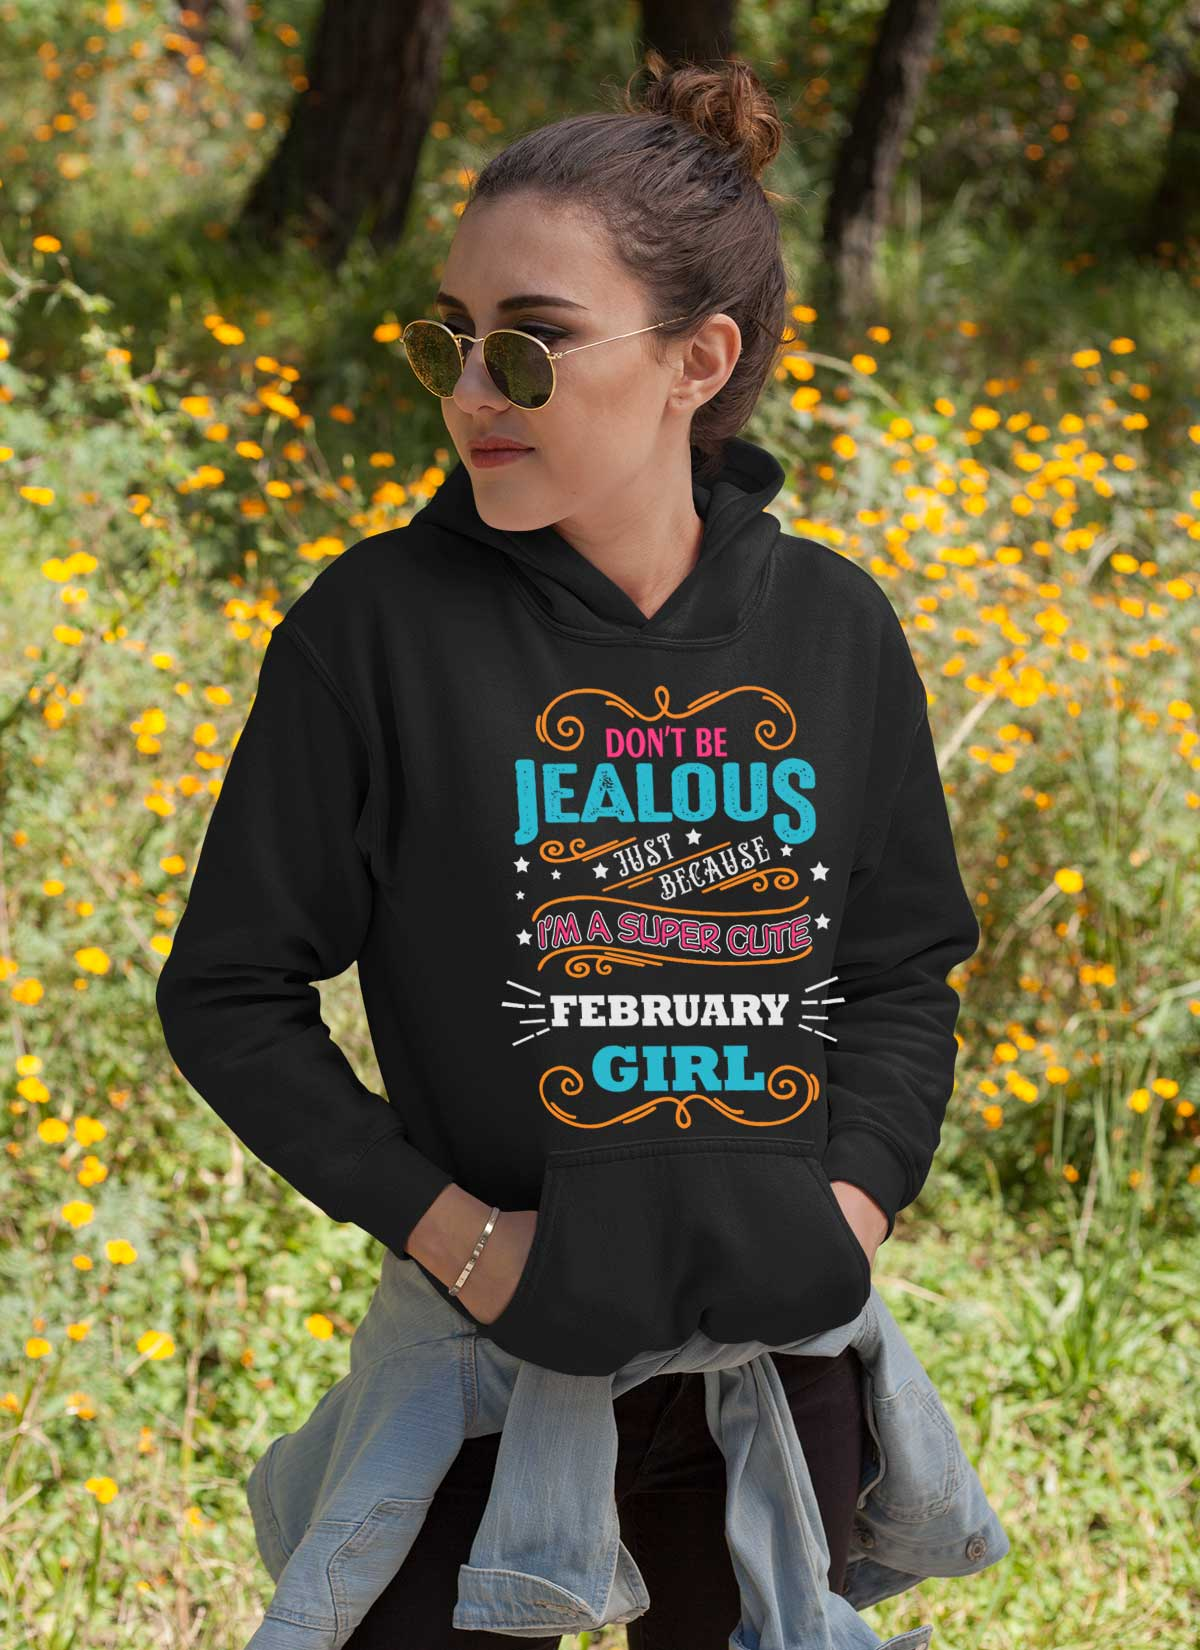 New Edition ** Super Cute February Girl** Shirts & Hoodies